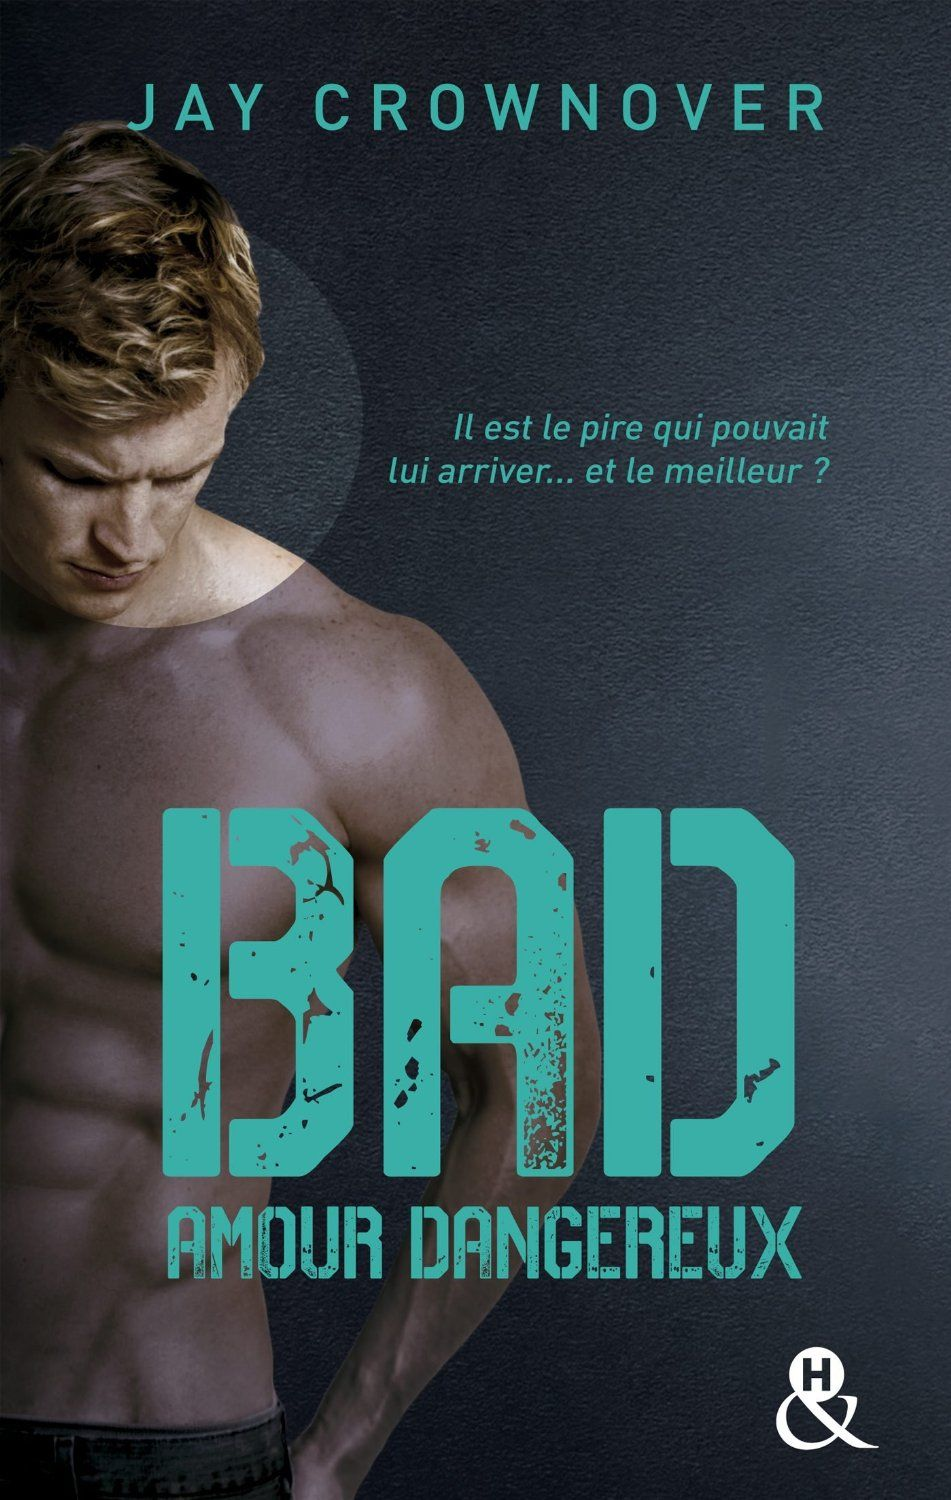 Couvertures, images et illustrations de Bad, Tome 2 : Amour Dangereux de Jay Crownover